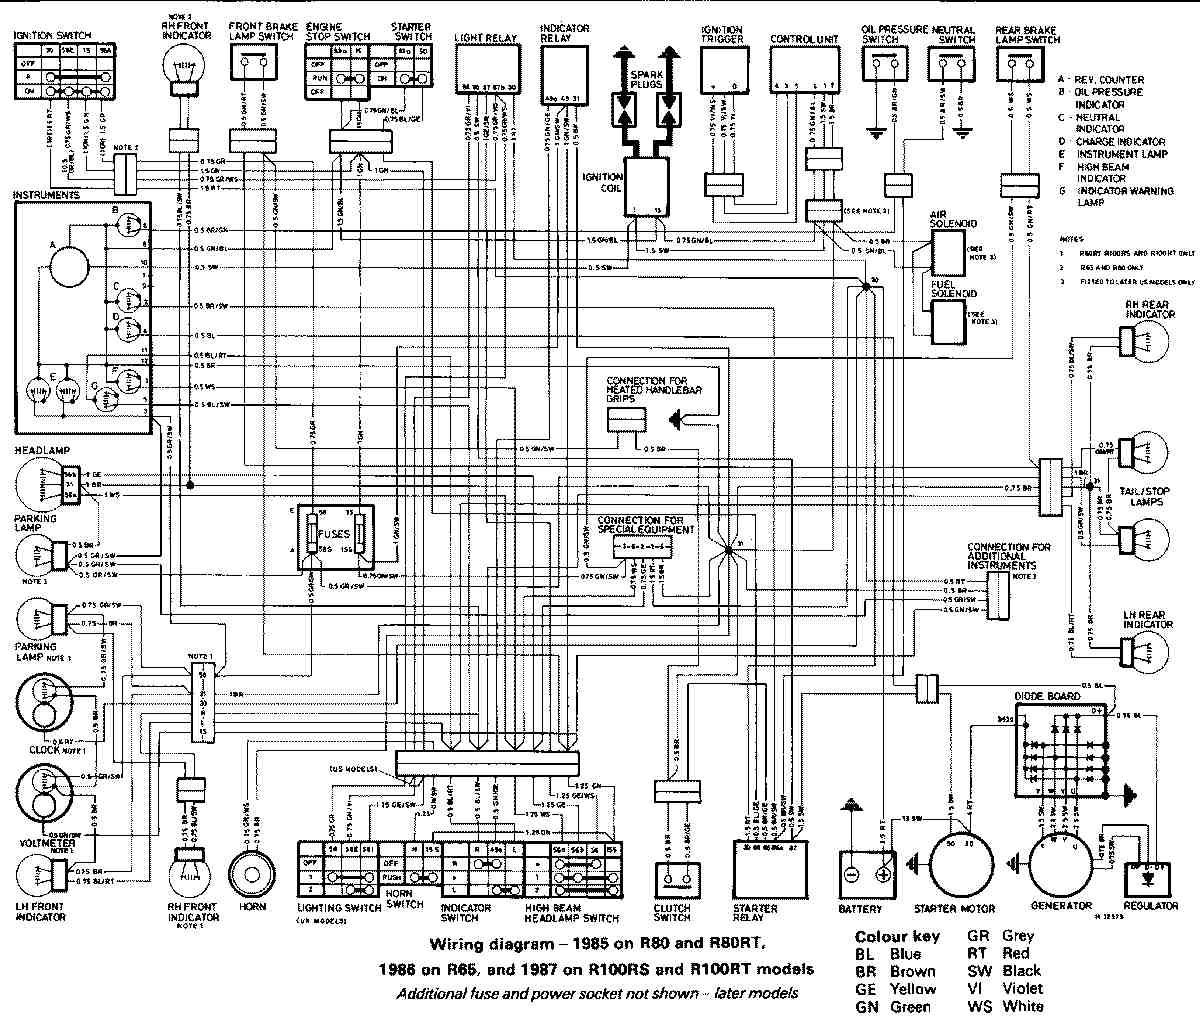 bmw r80, r80rt, r65, r100rs and r100rt 1985-1987 ... 2012 bmw x3 fuse diagram bmw x3 wiring diagram #11